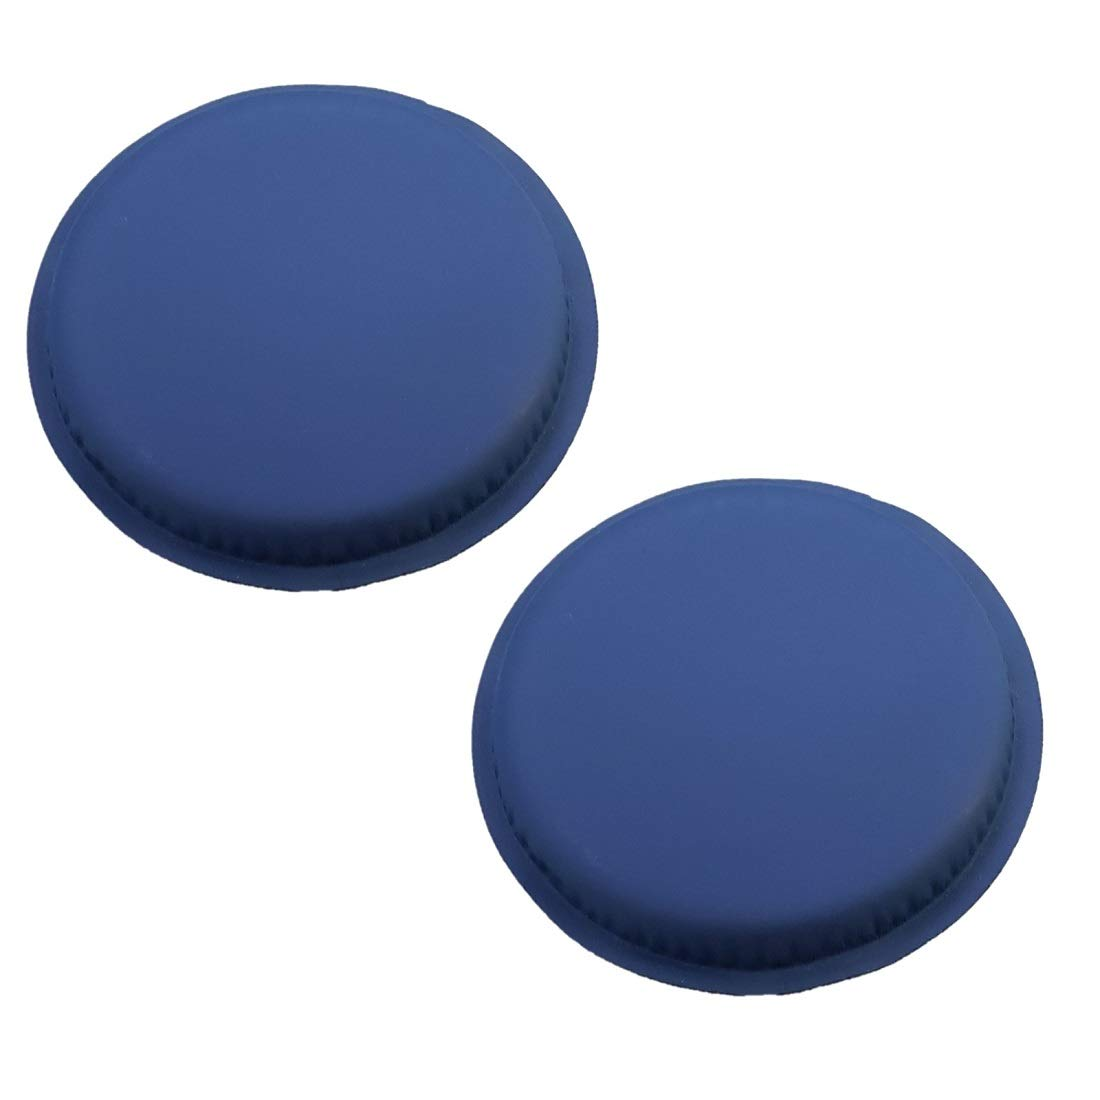 ULTRAGEL''Gaming'' Super Comfy Palm/Wrist Gel Pads for Notebook, Netbook, and Laptop (4.30 Disc/Pair, Blue) by ULTRAGEL